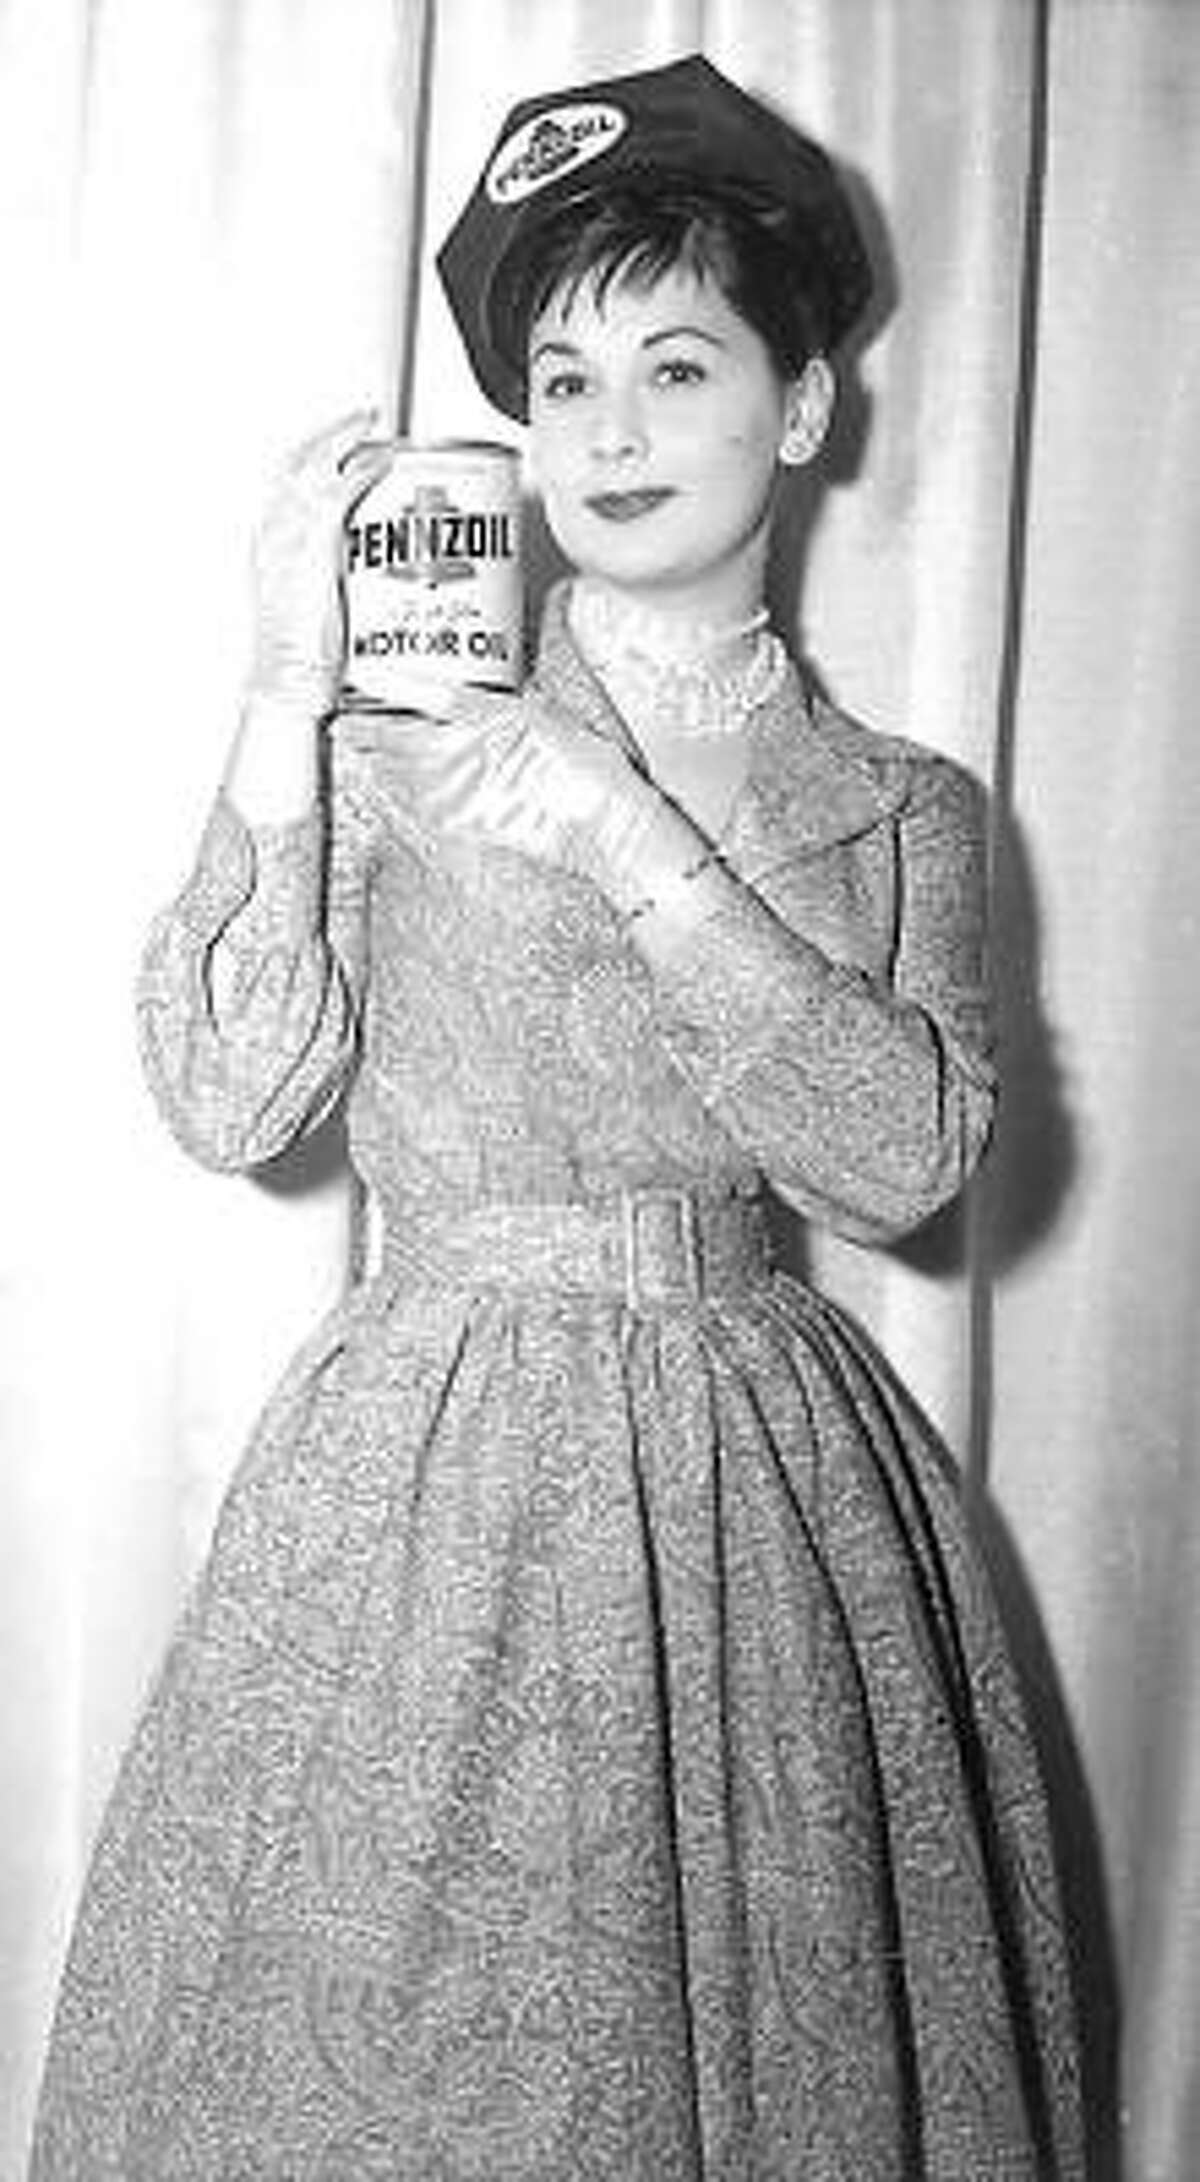 A Penny Pennzoil shows off the company's products in the early 1960s.